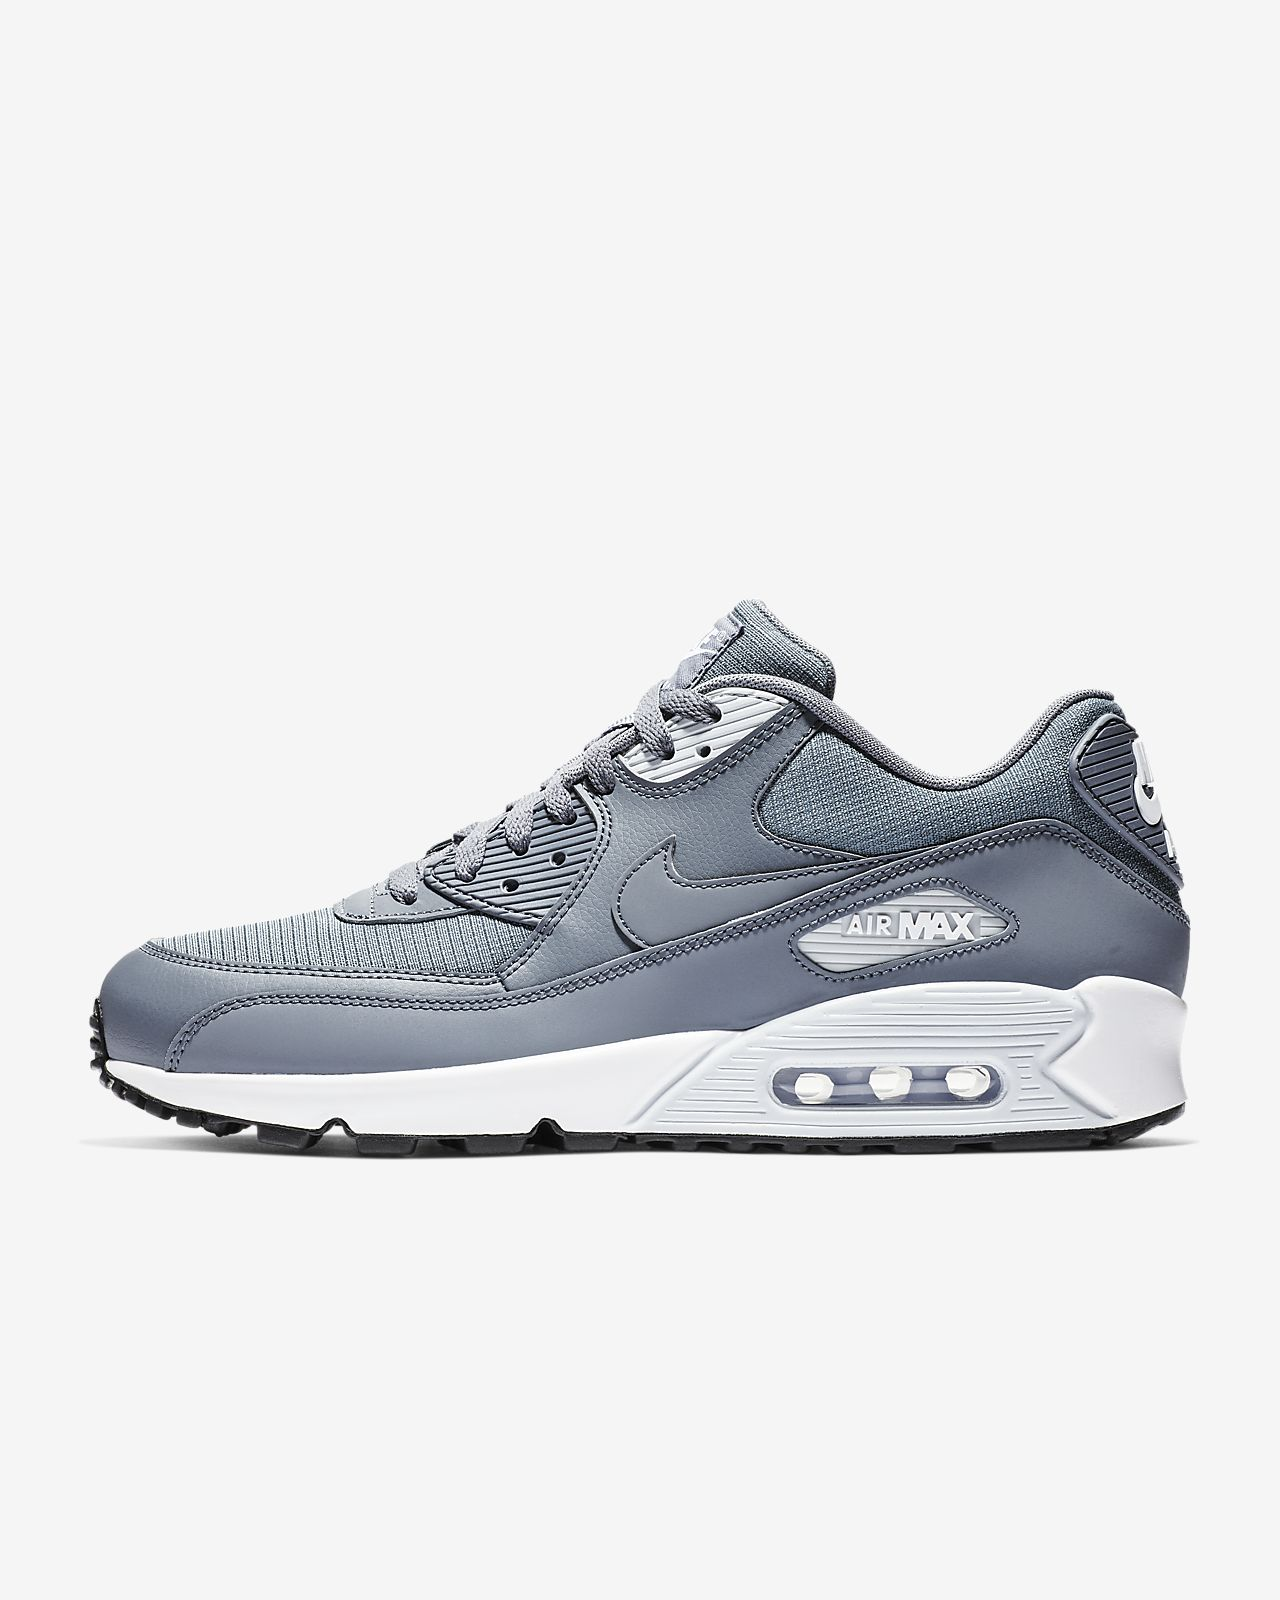 479c353dba7c Nike Air Max 90 SE Men s Shoe. Nike.com CH